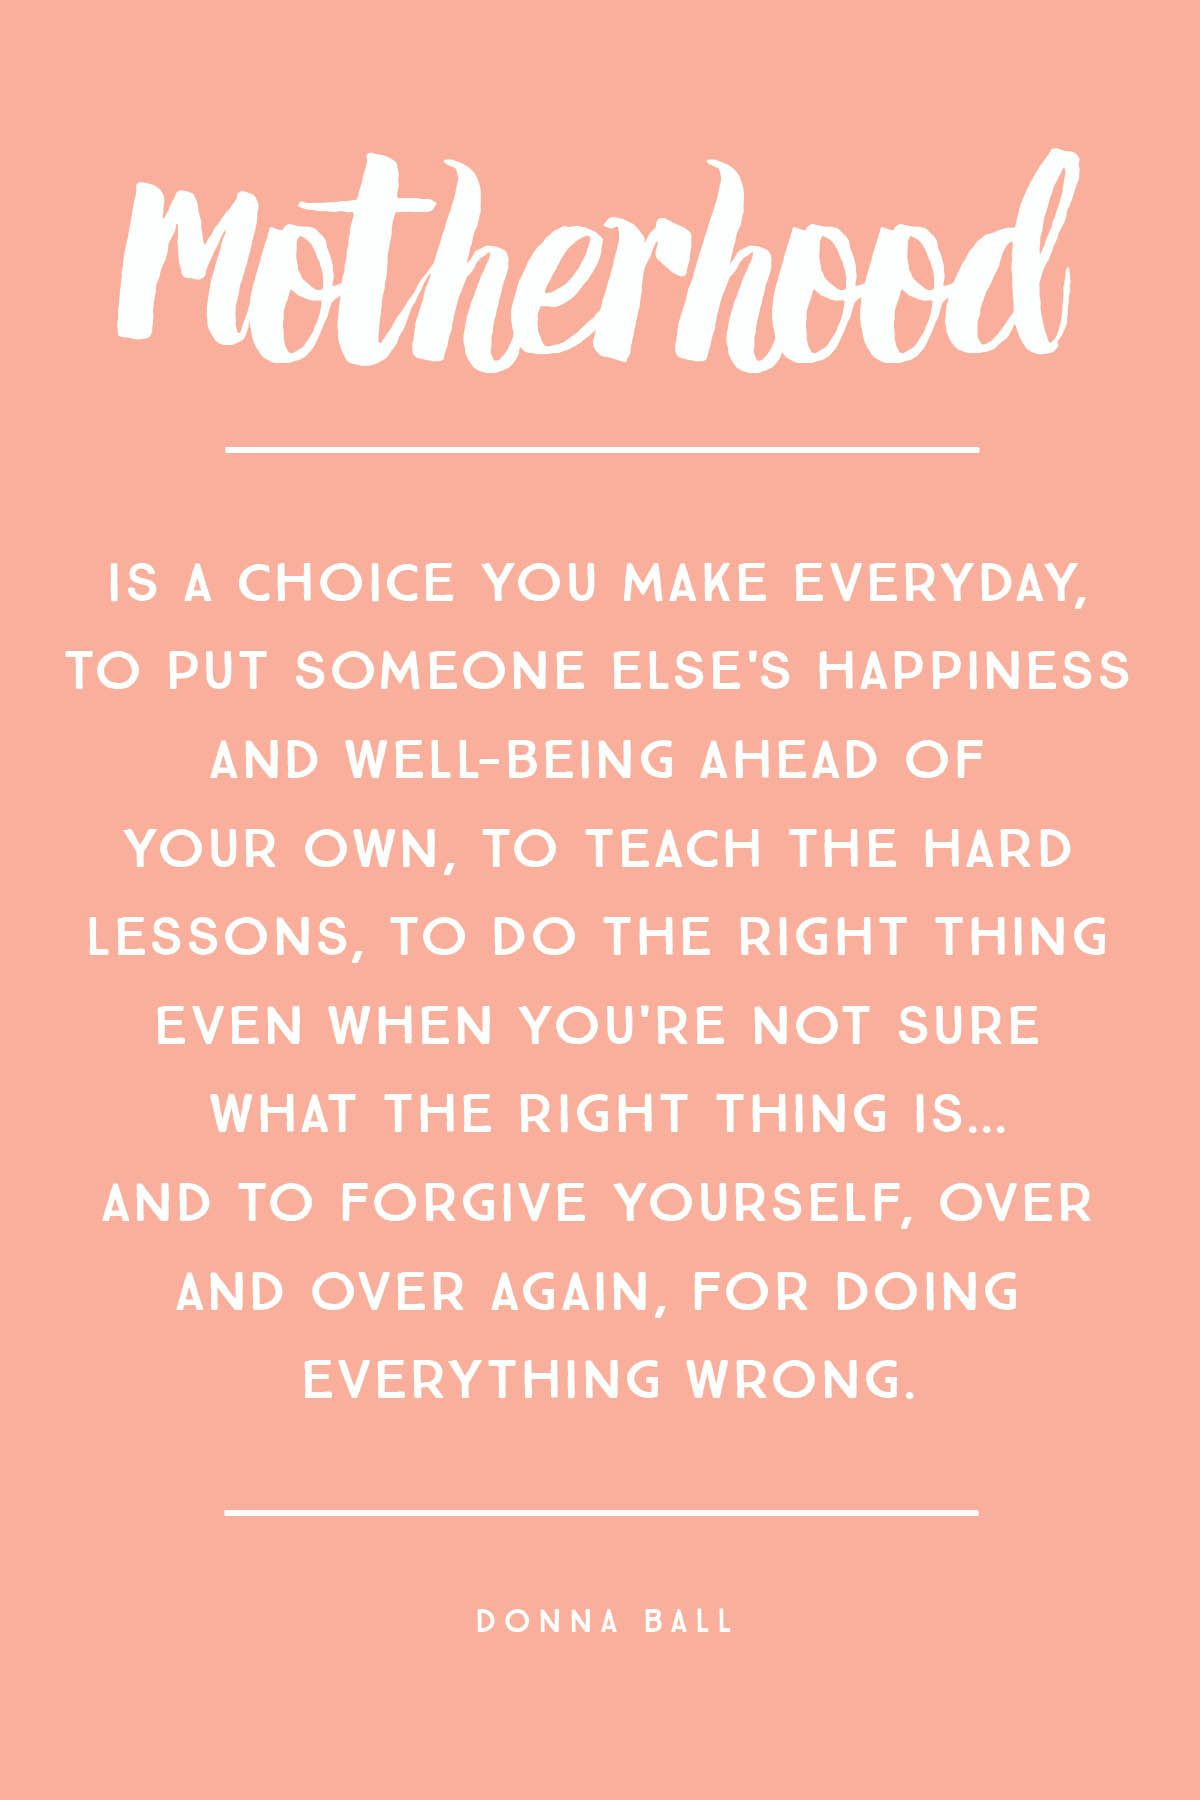 Mothers Day Inspirational Quotes Pinterest thumbnail